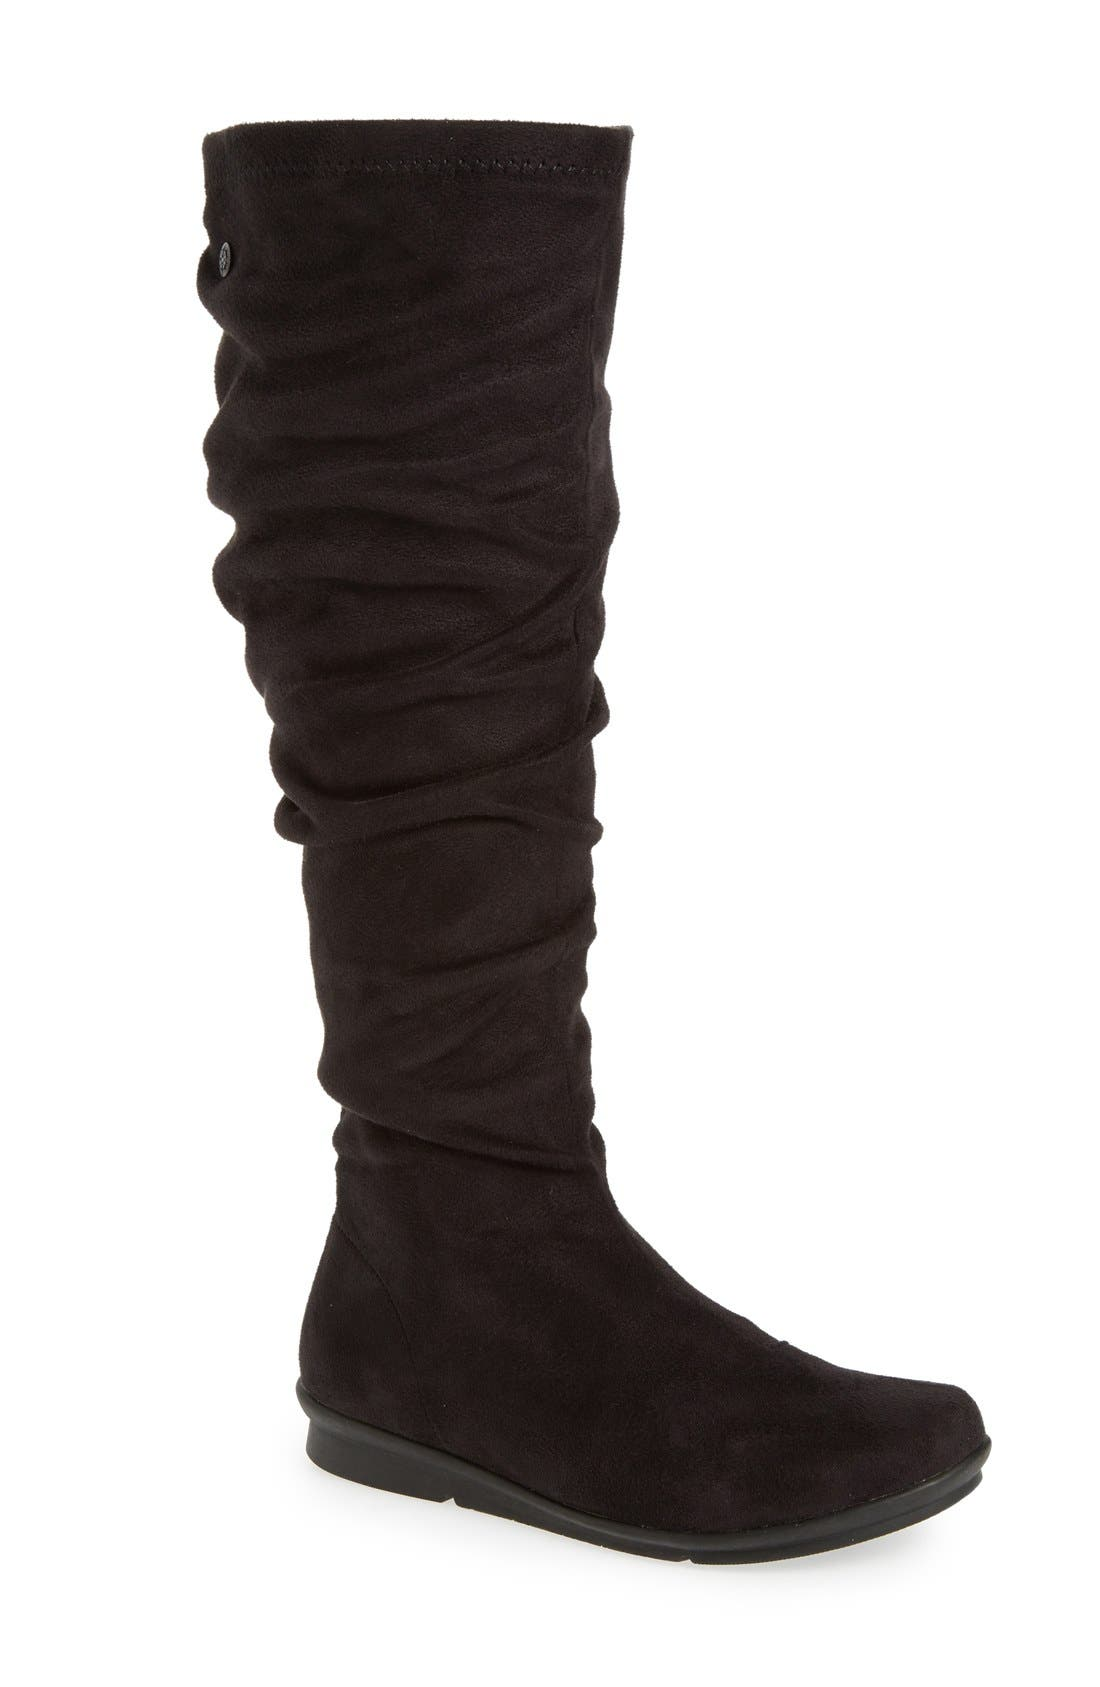 BUSSOLA 'Creta' Water Resistant Slouchy Knee-High Boot, Main, color, 001